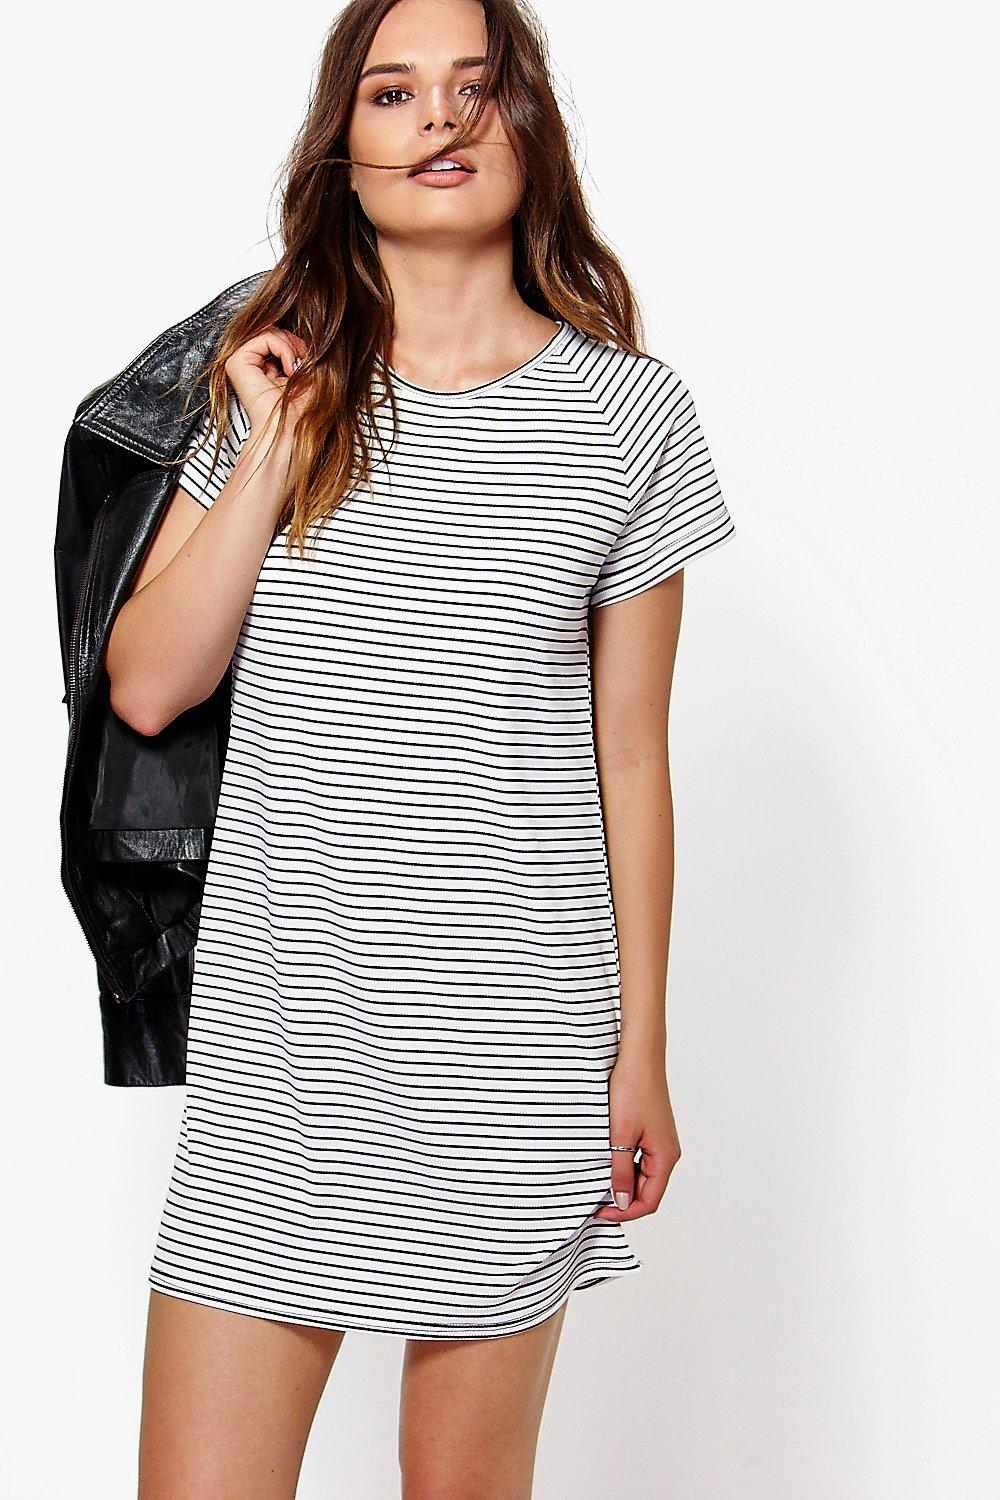 aa7d9c19814f Candy T-Shirt Dress In Stripe Print. Hover to zoom